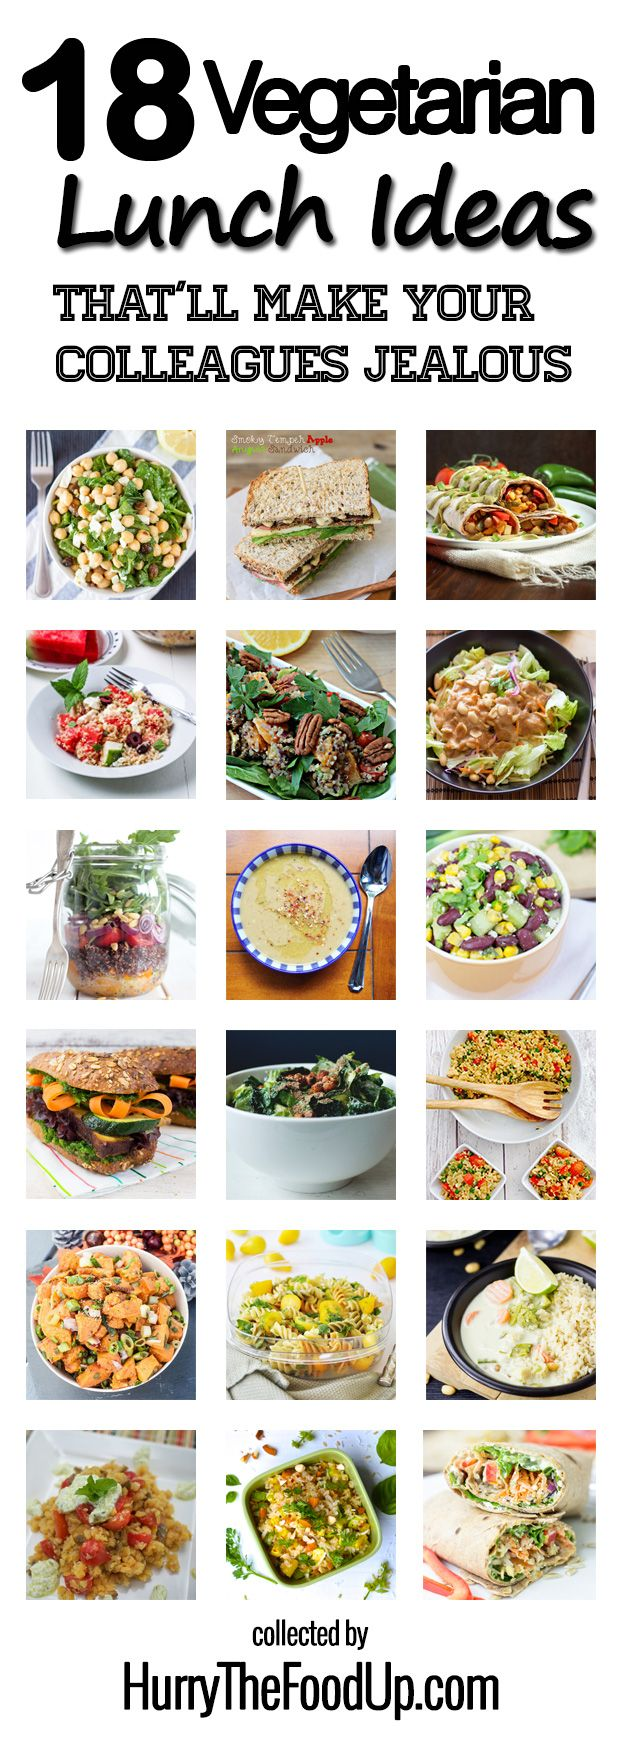 18 Vegetarian Lunch Ideas That Will Make Your Colleagues Jealous Recipe Healthy Vegetarian Vegetarian Lunch Easy Vegetarian